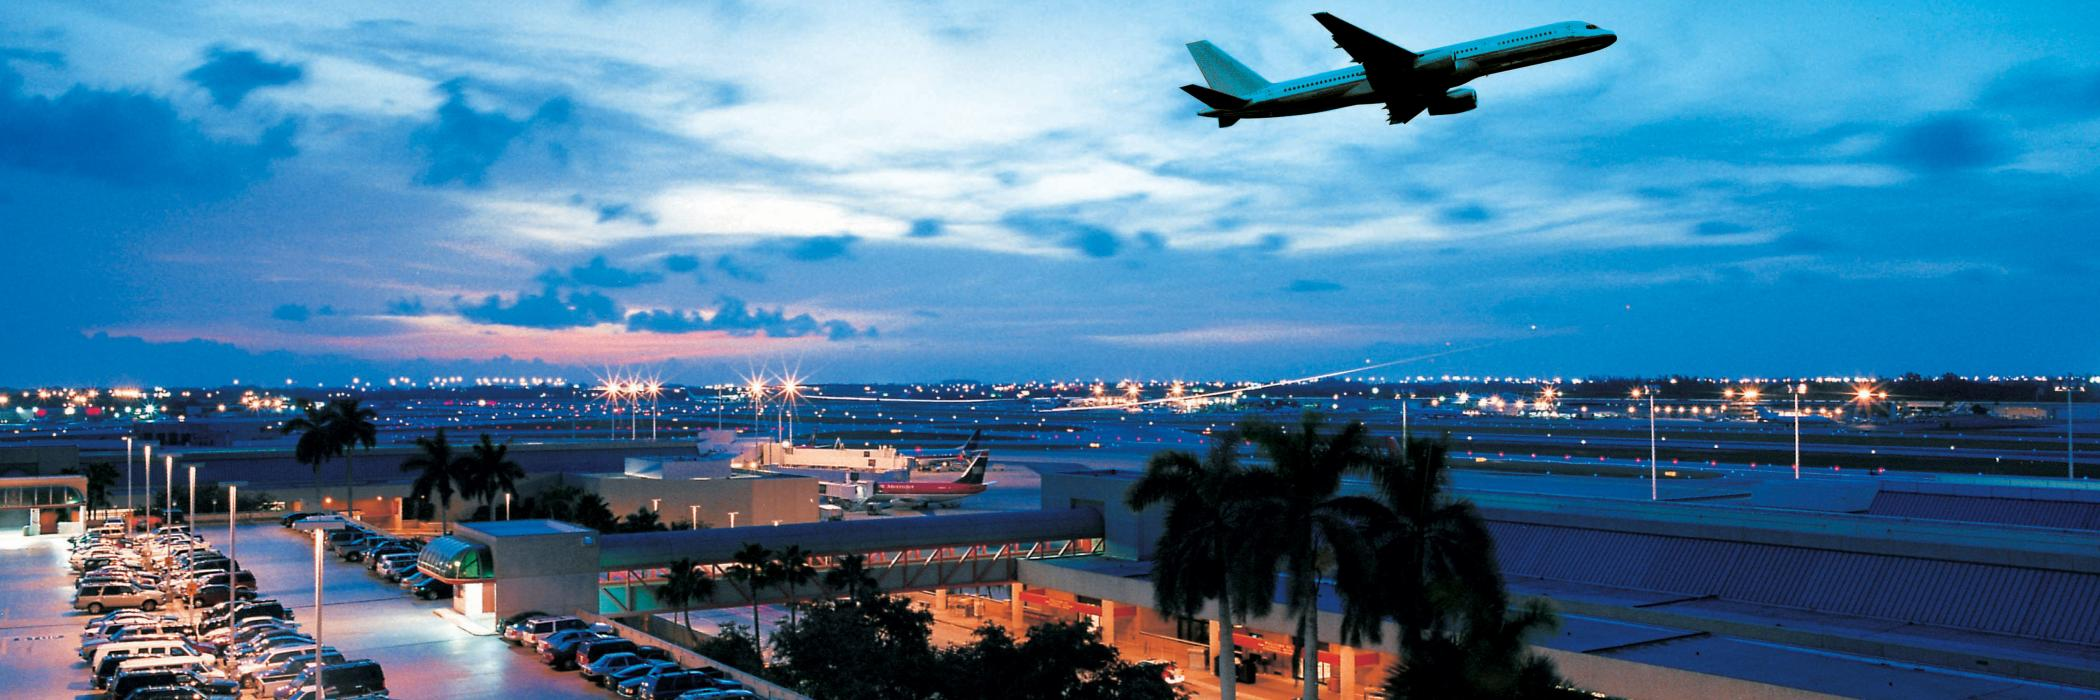 Fort Lauderdale airport is 26th airport in US to have Clear biometric security checks